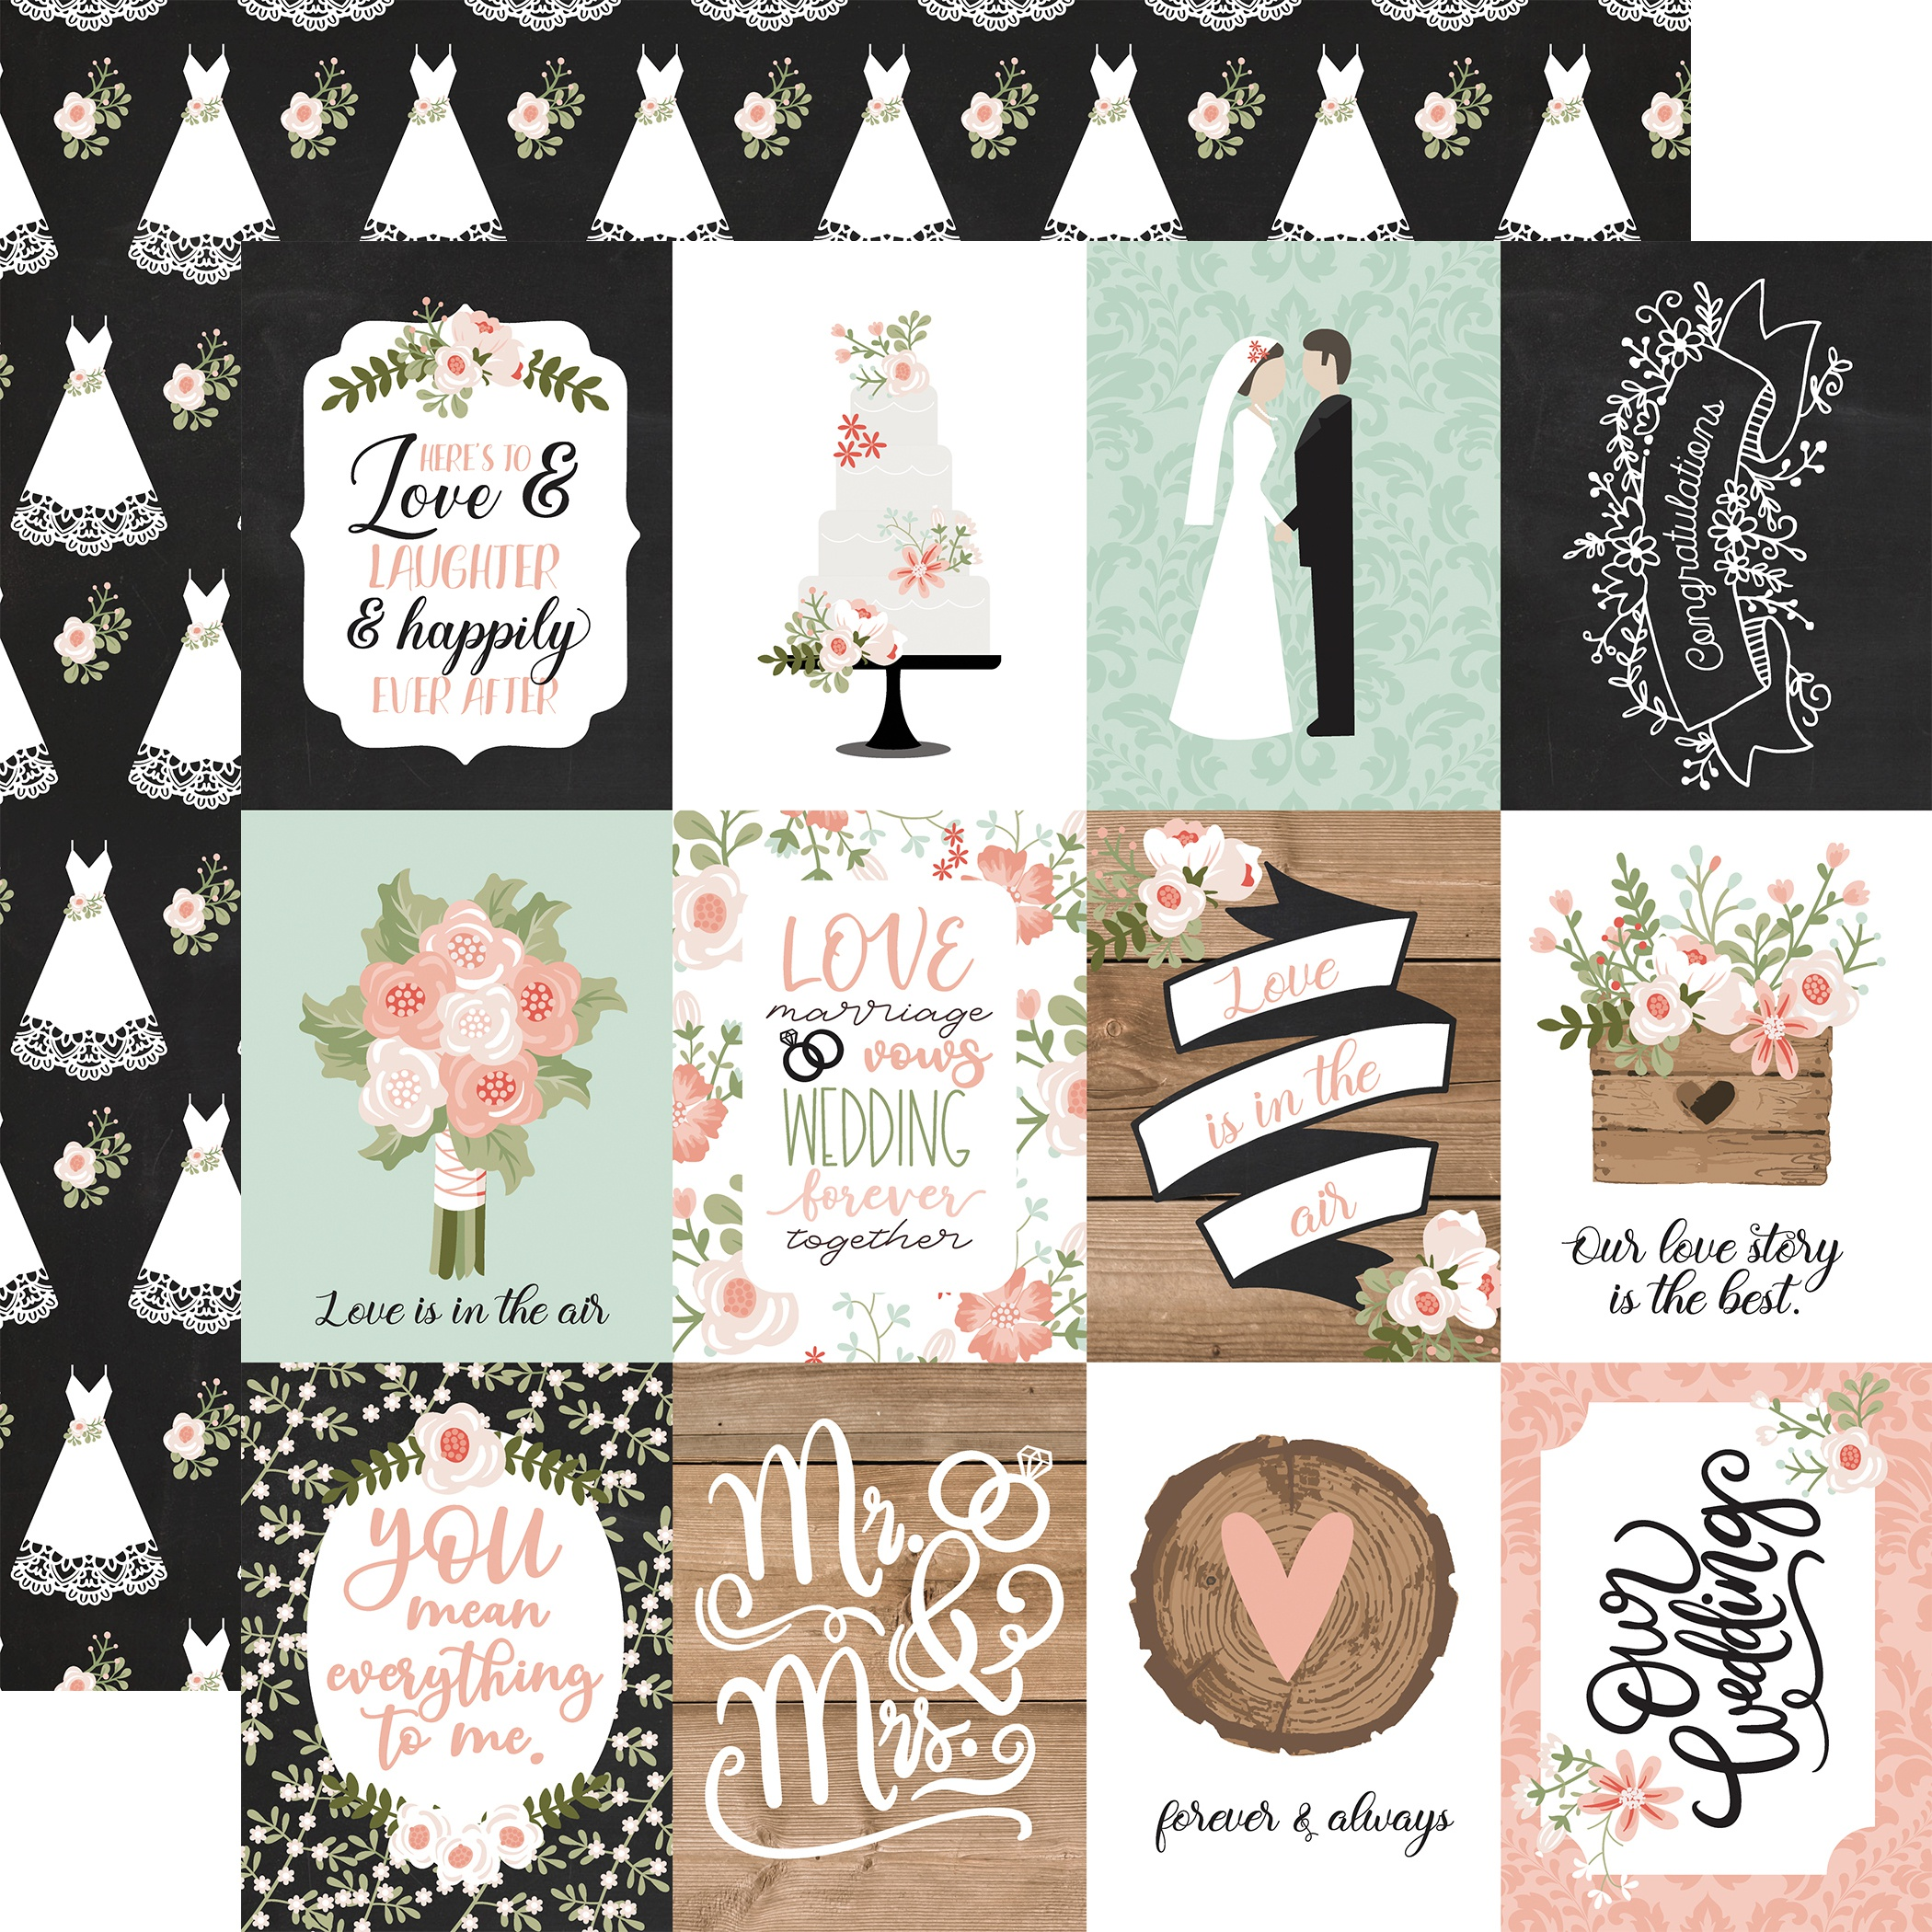 Our Wedding Double-Sided Cardstock 12X12-4X6 Journaling Cards